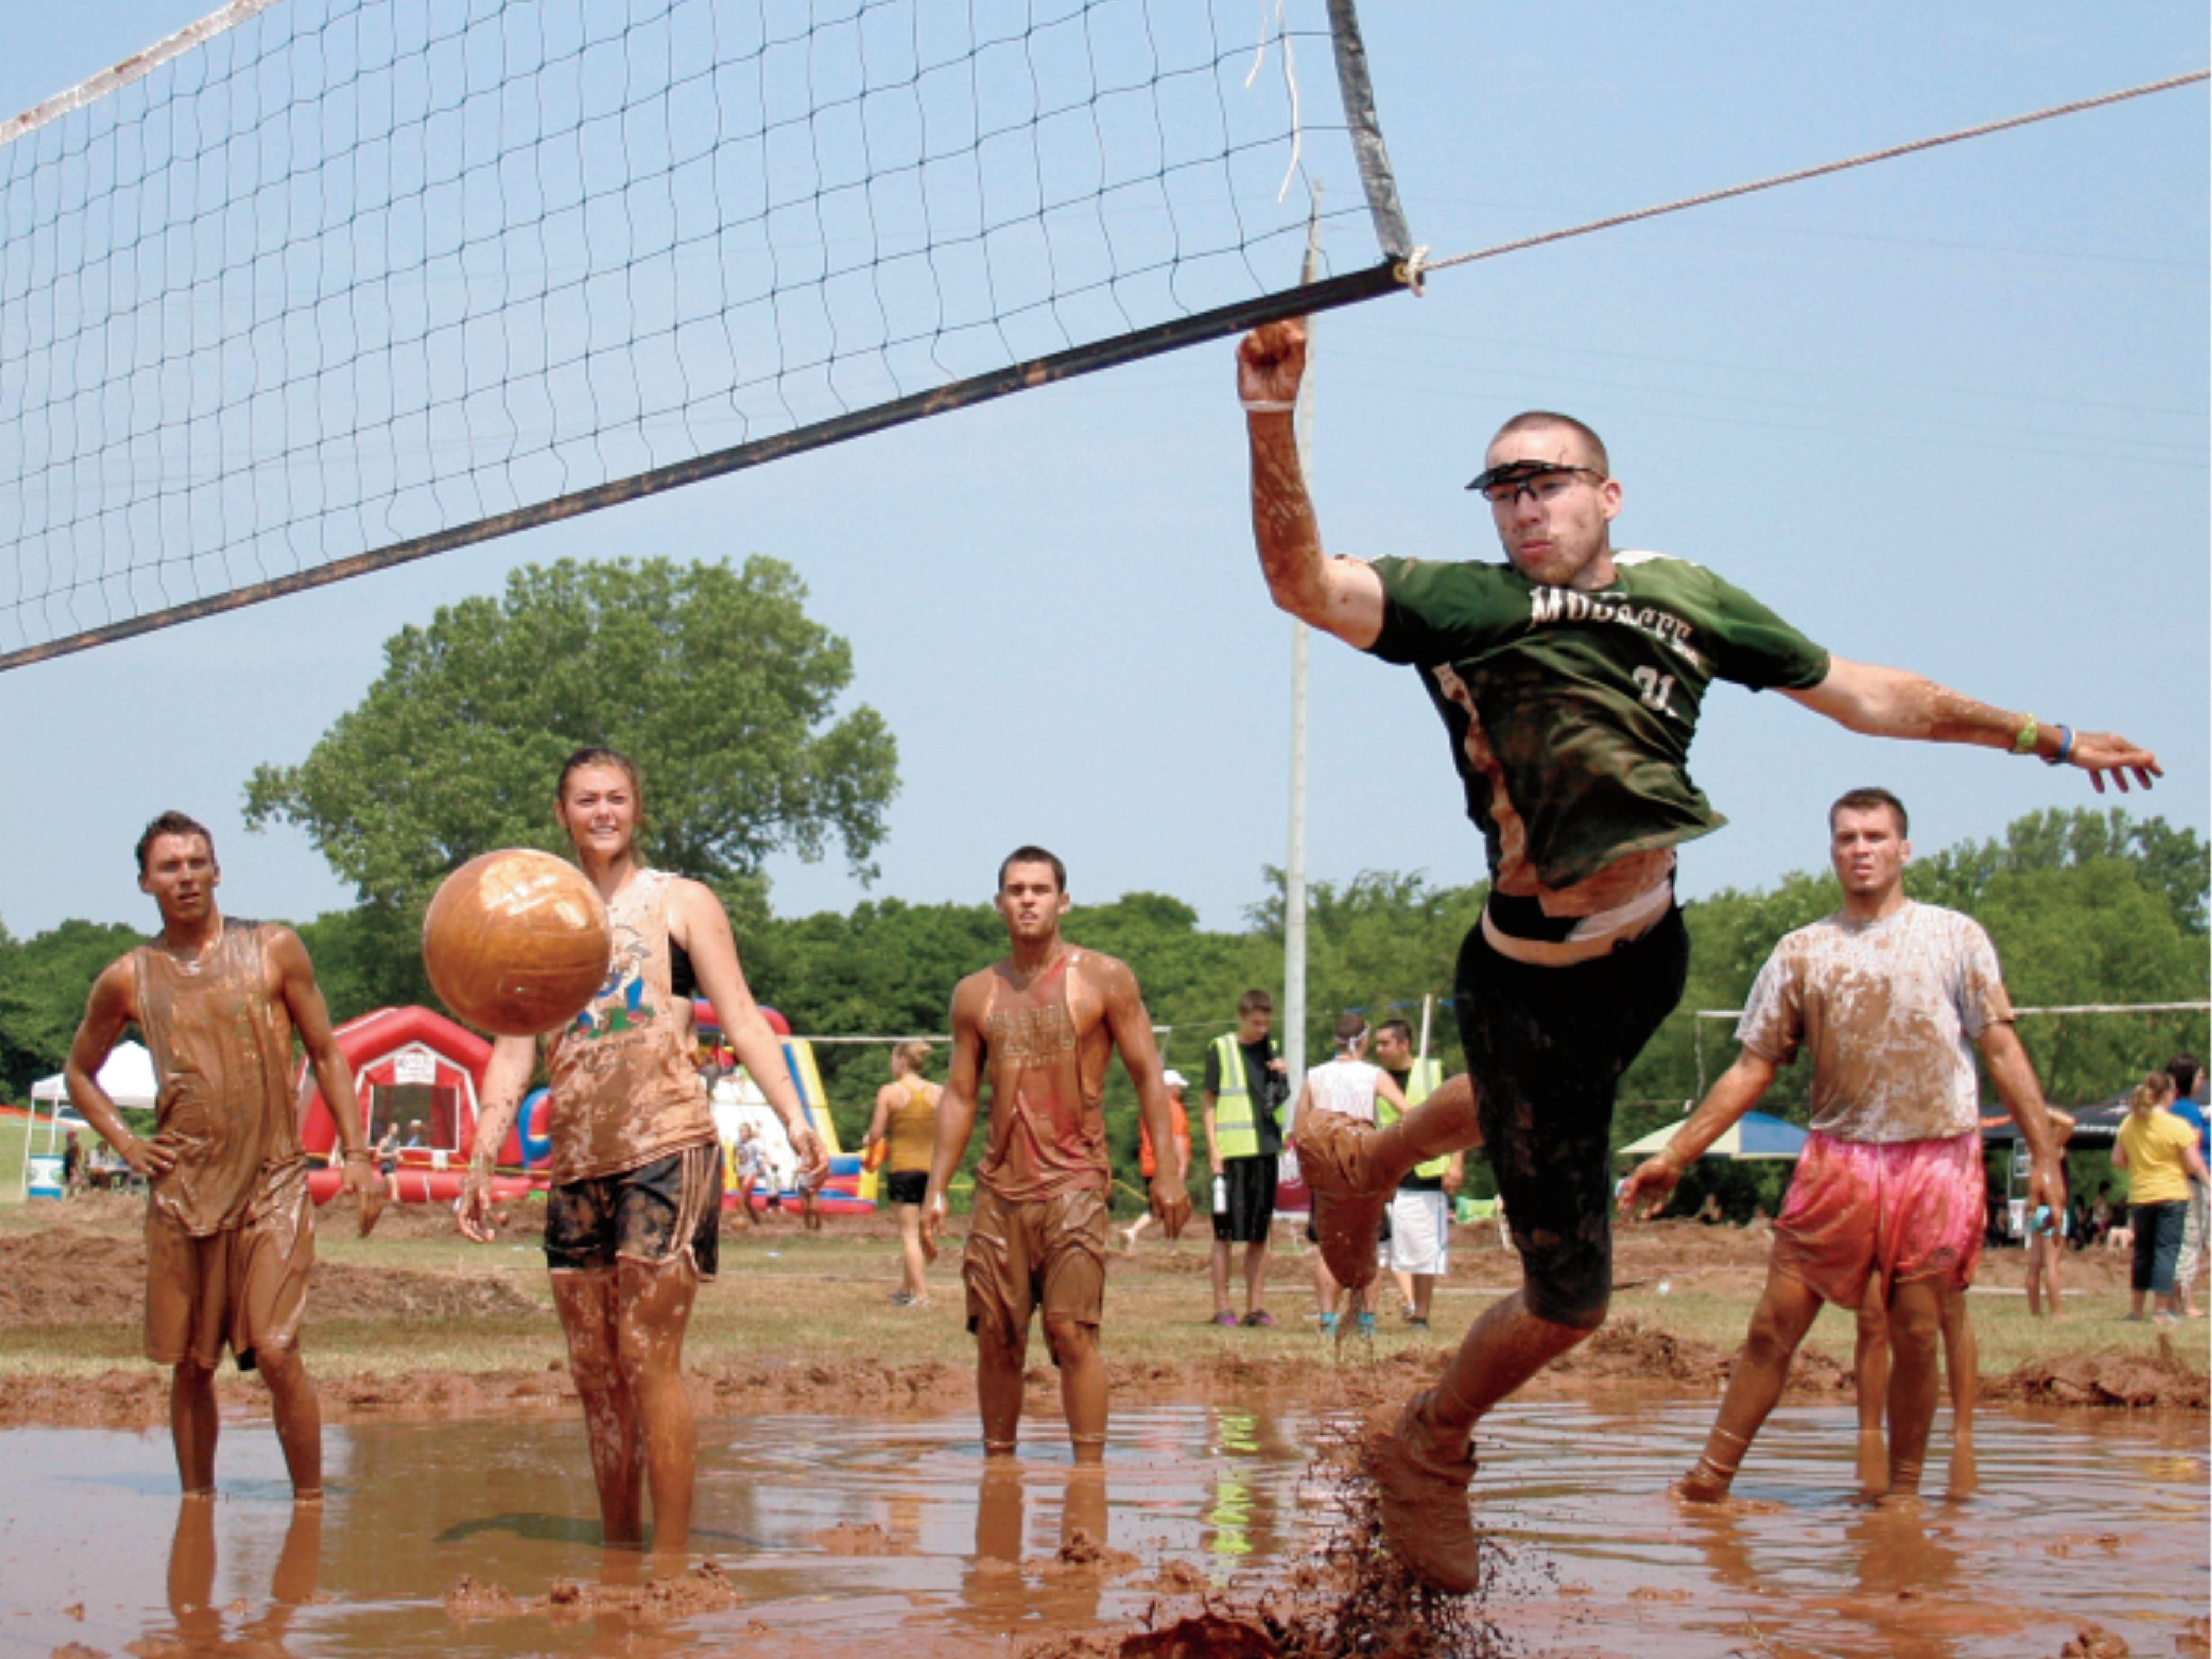 Visit Muskogee for the yearly Mud Stock Volleyball tournament!